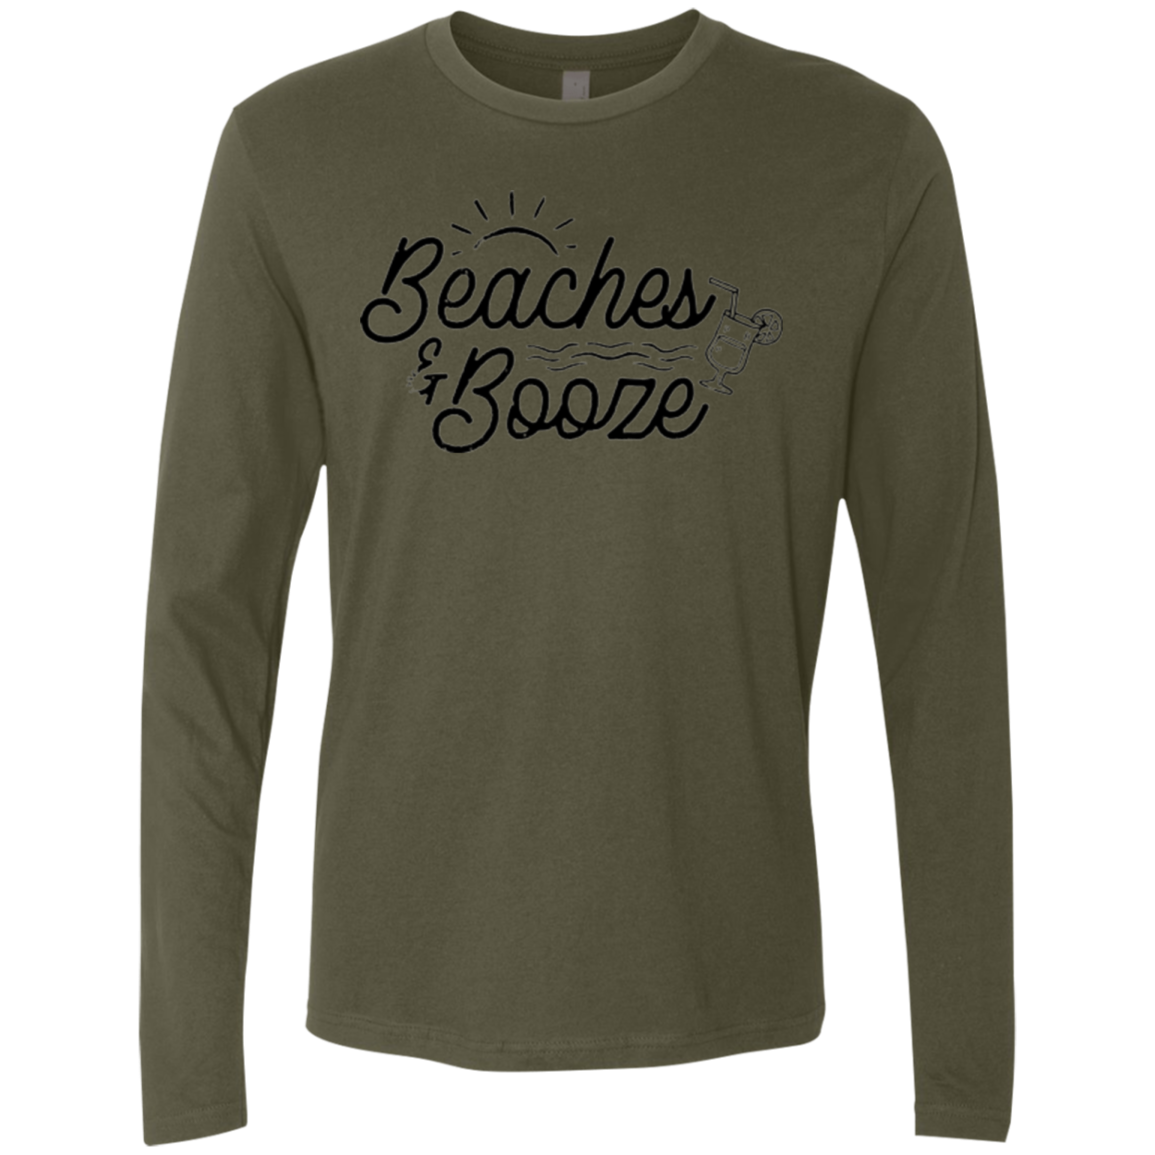 Beaches and Booze Men's Long Sleeve Tee - Trendy Tees